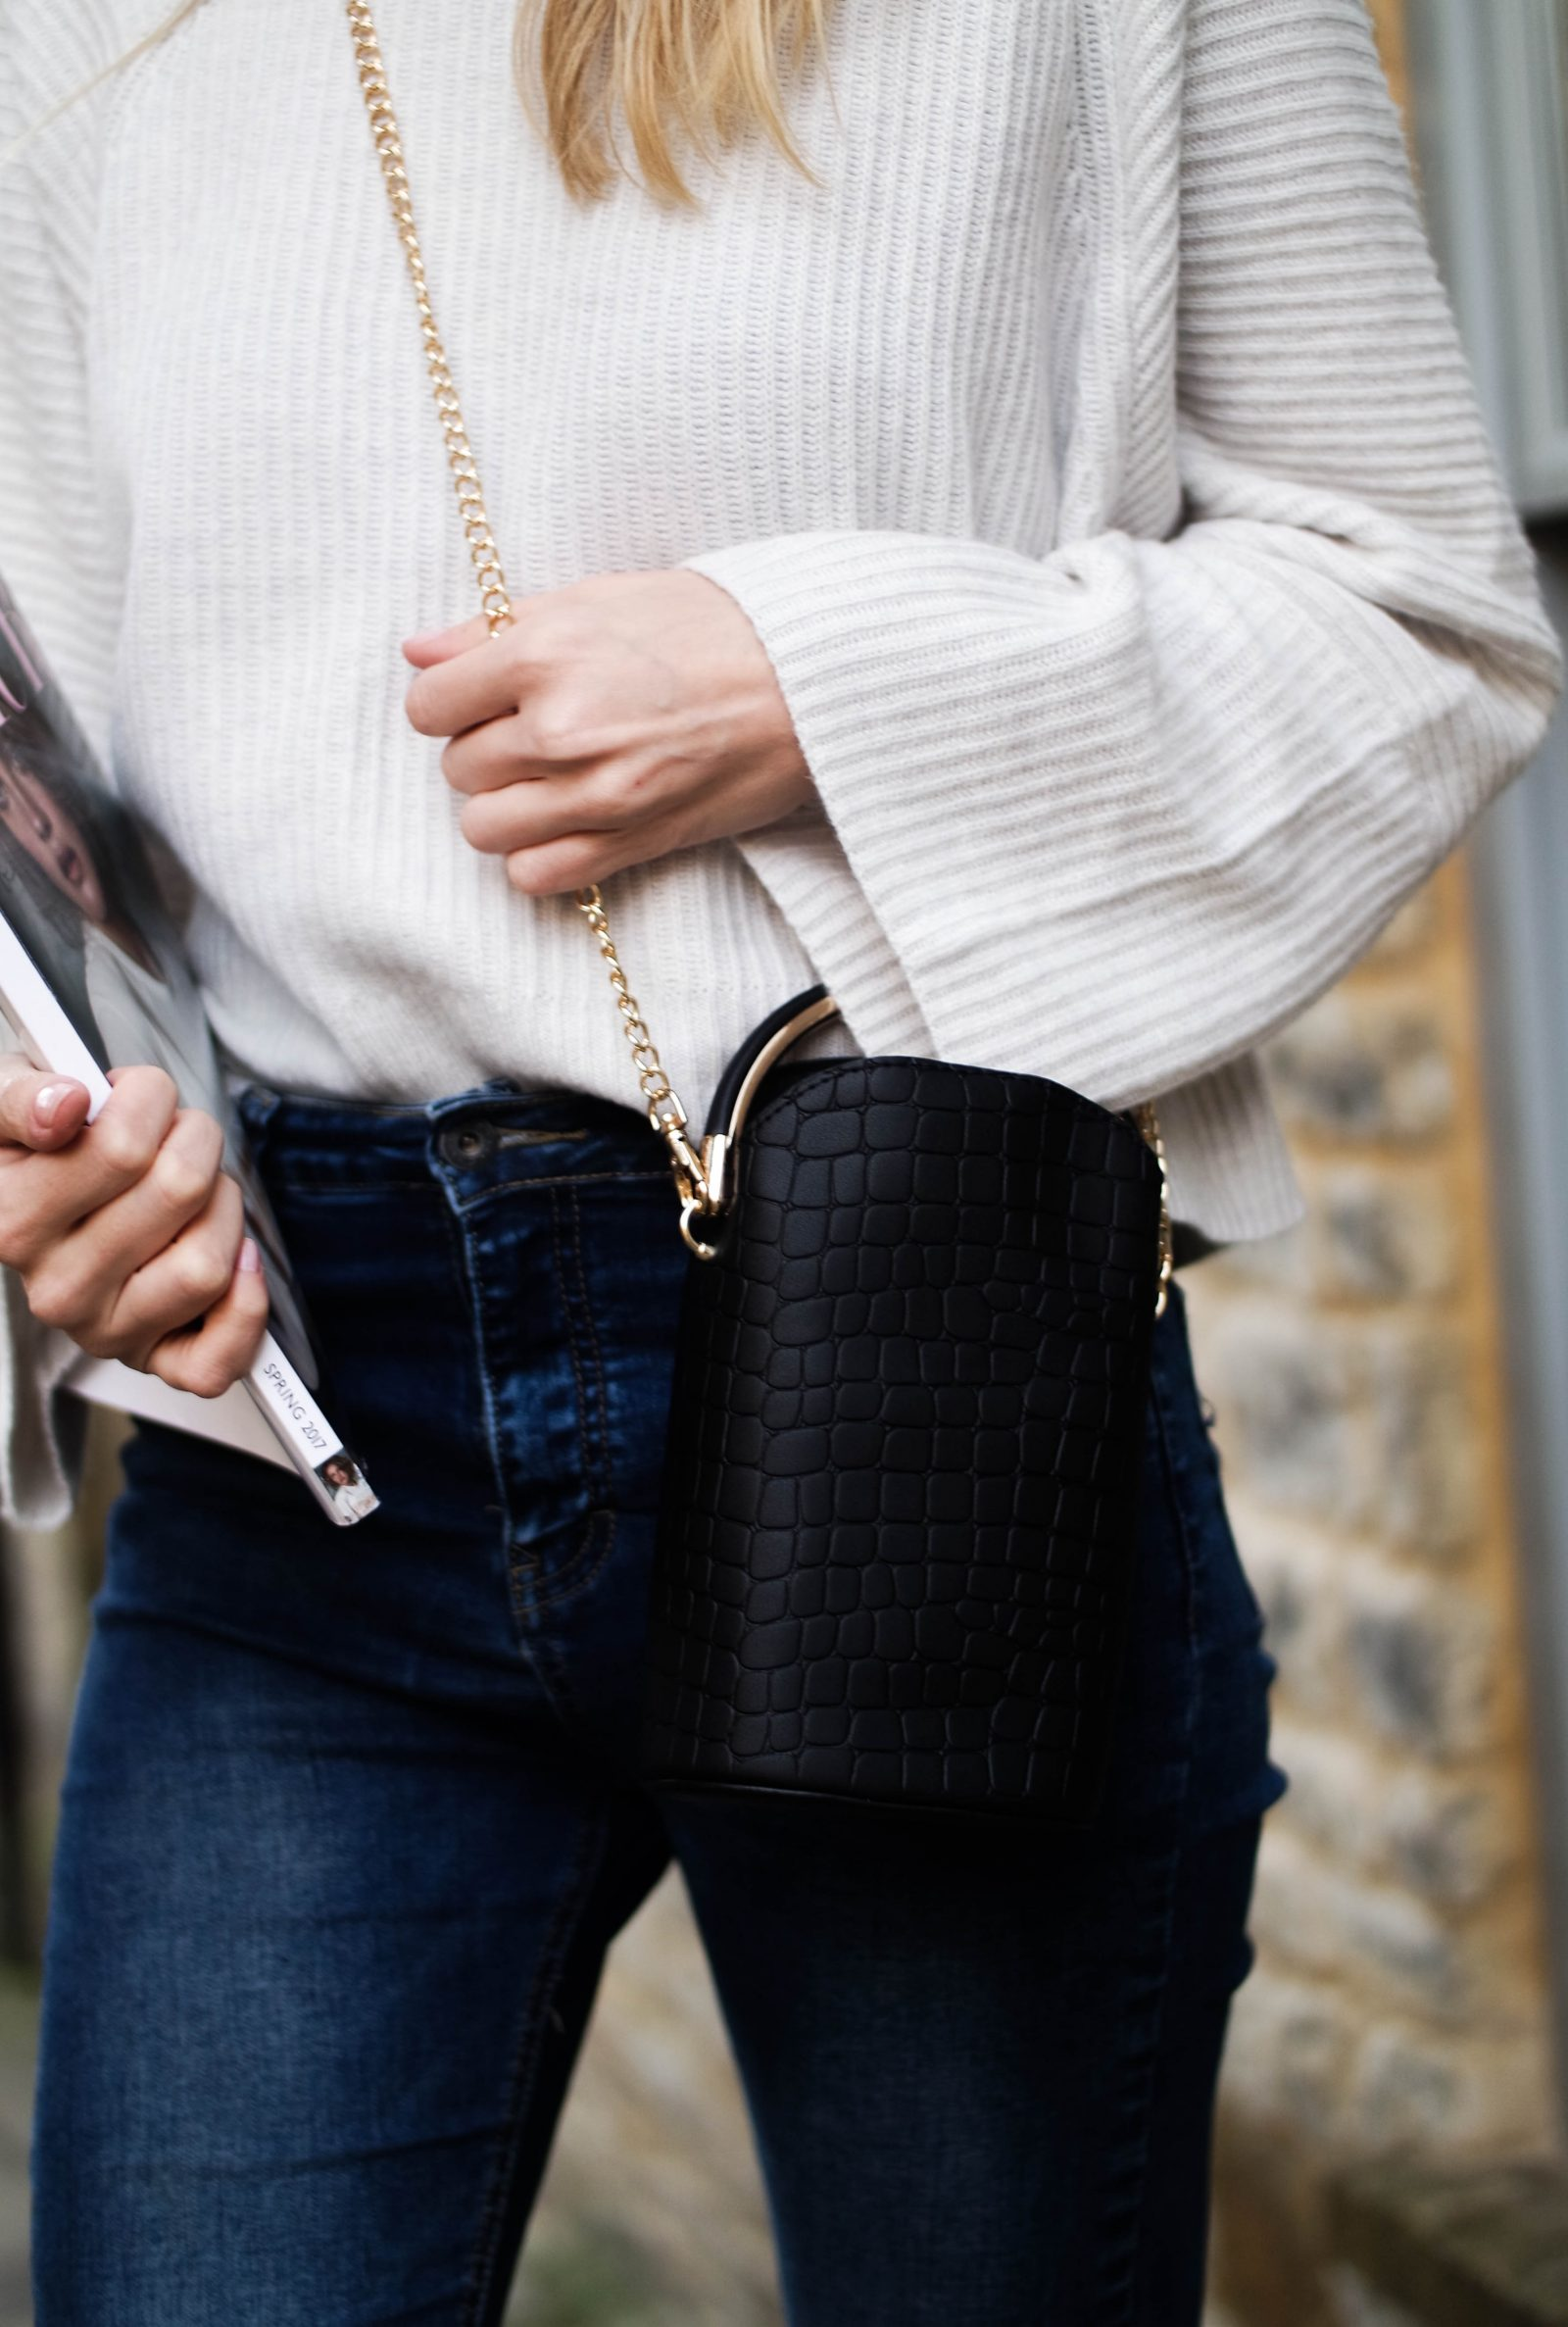 5 Reasons To Invest In Cashmere - Croc Bag